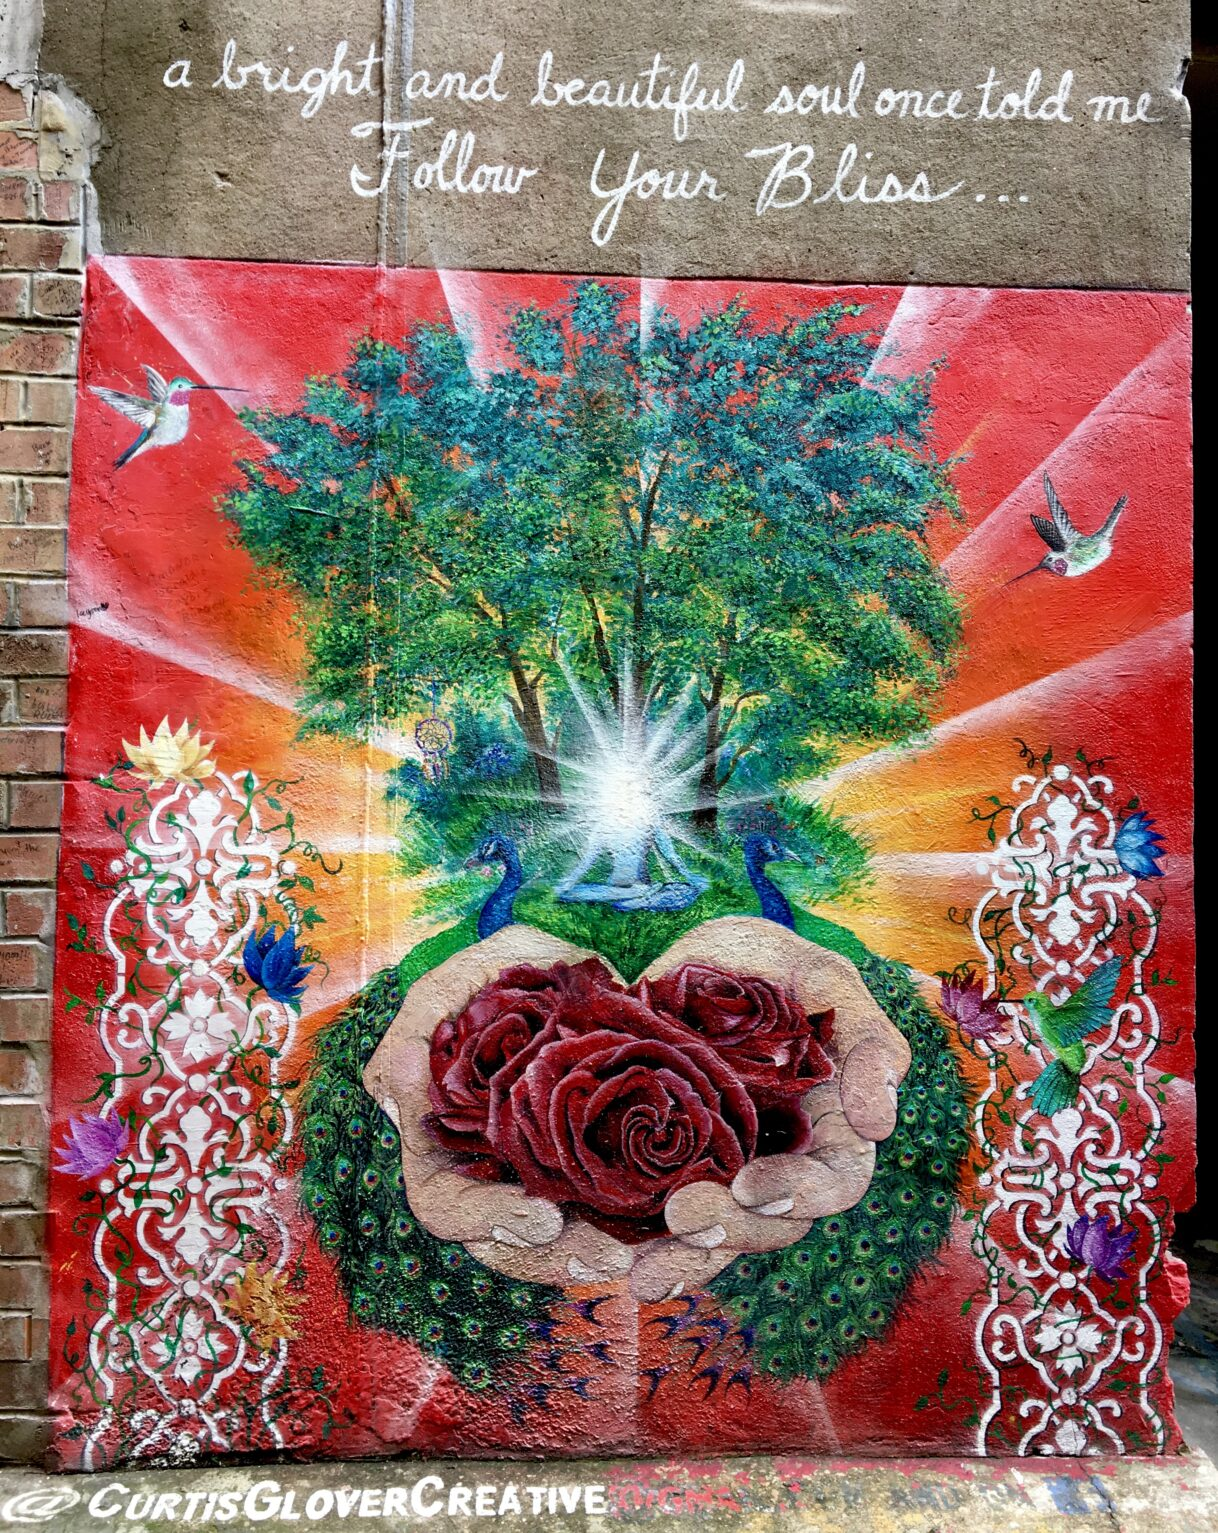 Follow Your Bliss by Curtis Glover – Strong Alley – Knoxville, Tennessee – 10/29/2020